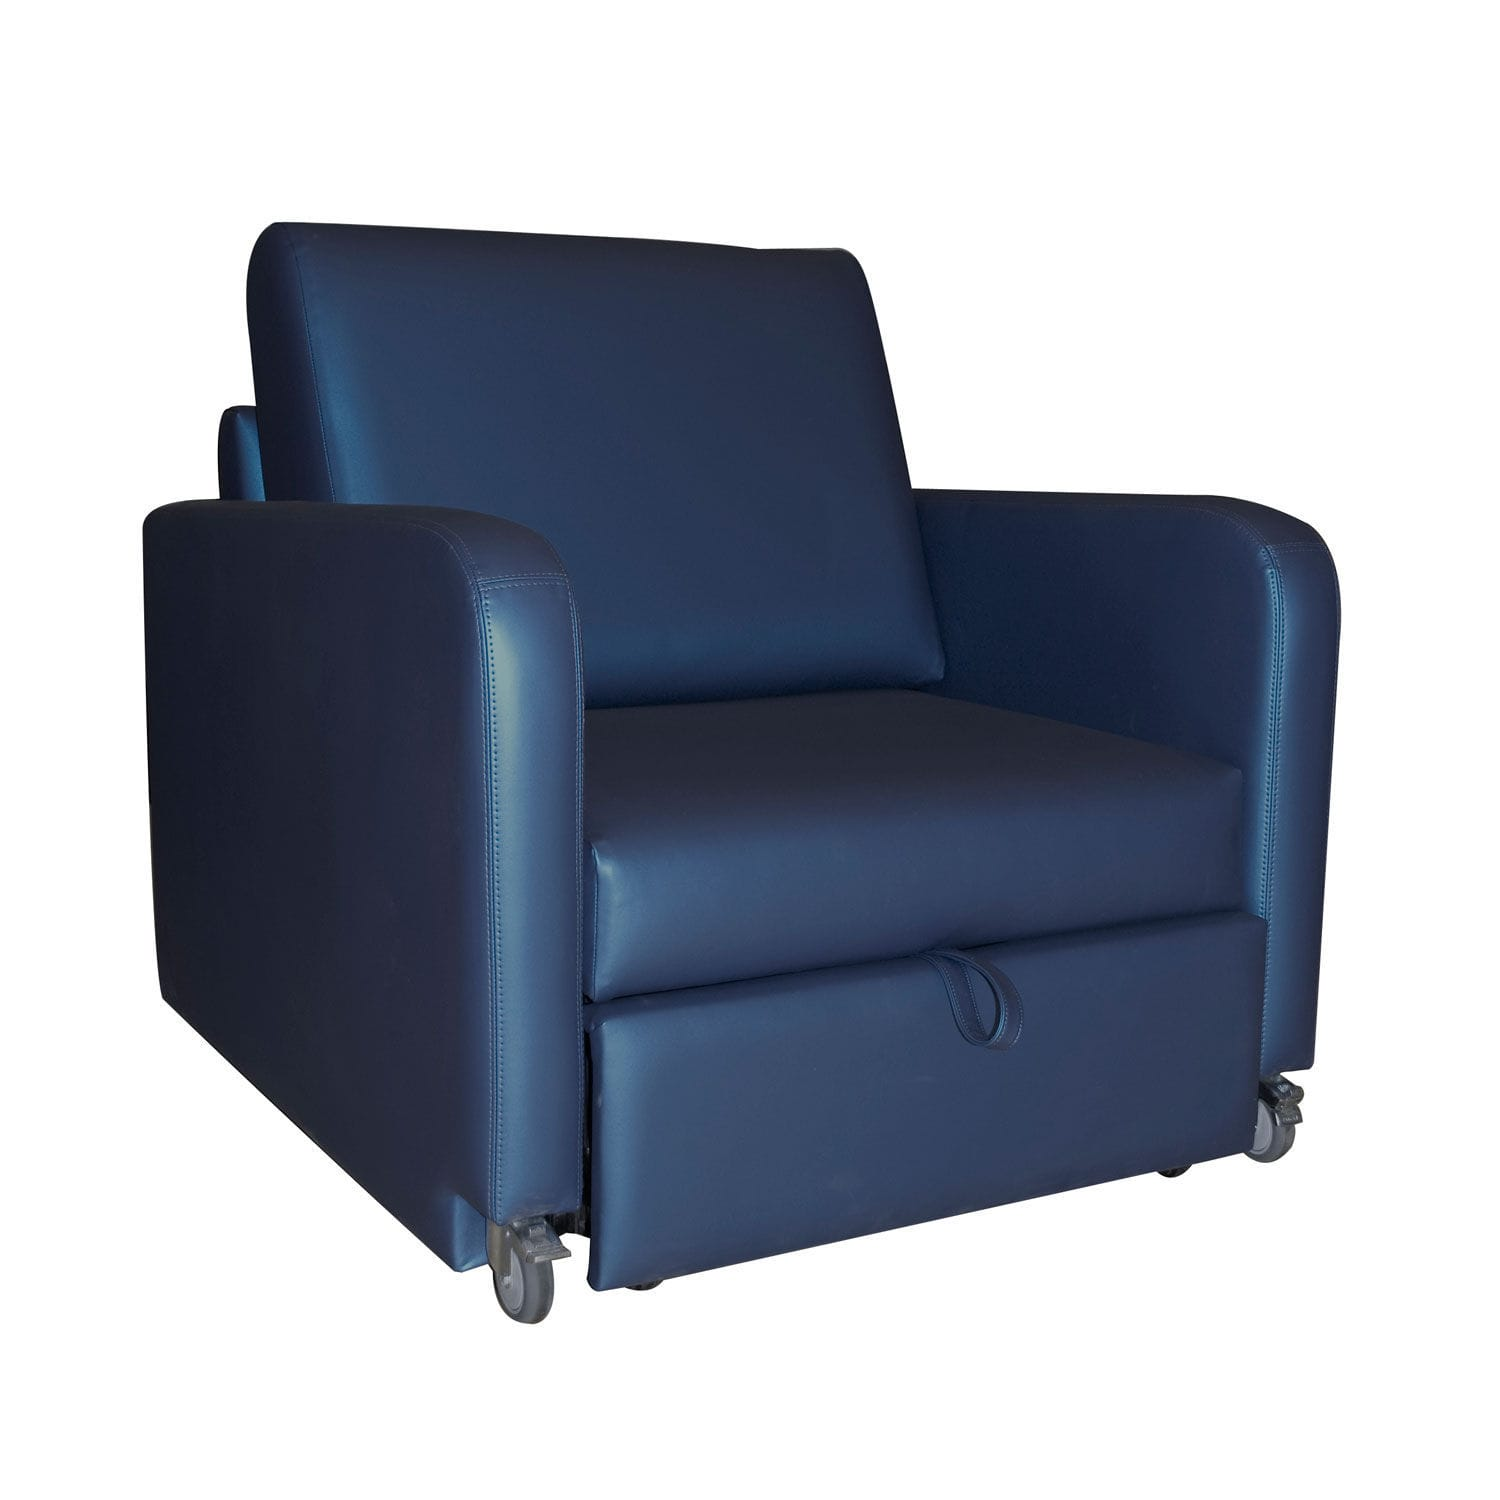 Reclining patient chair on casters with legrest convertible